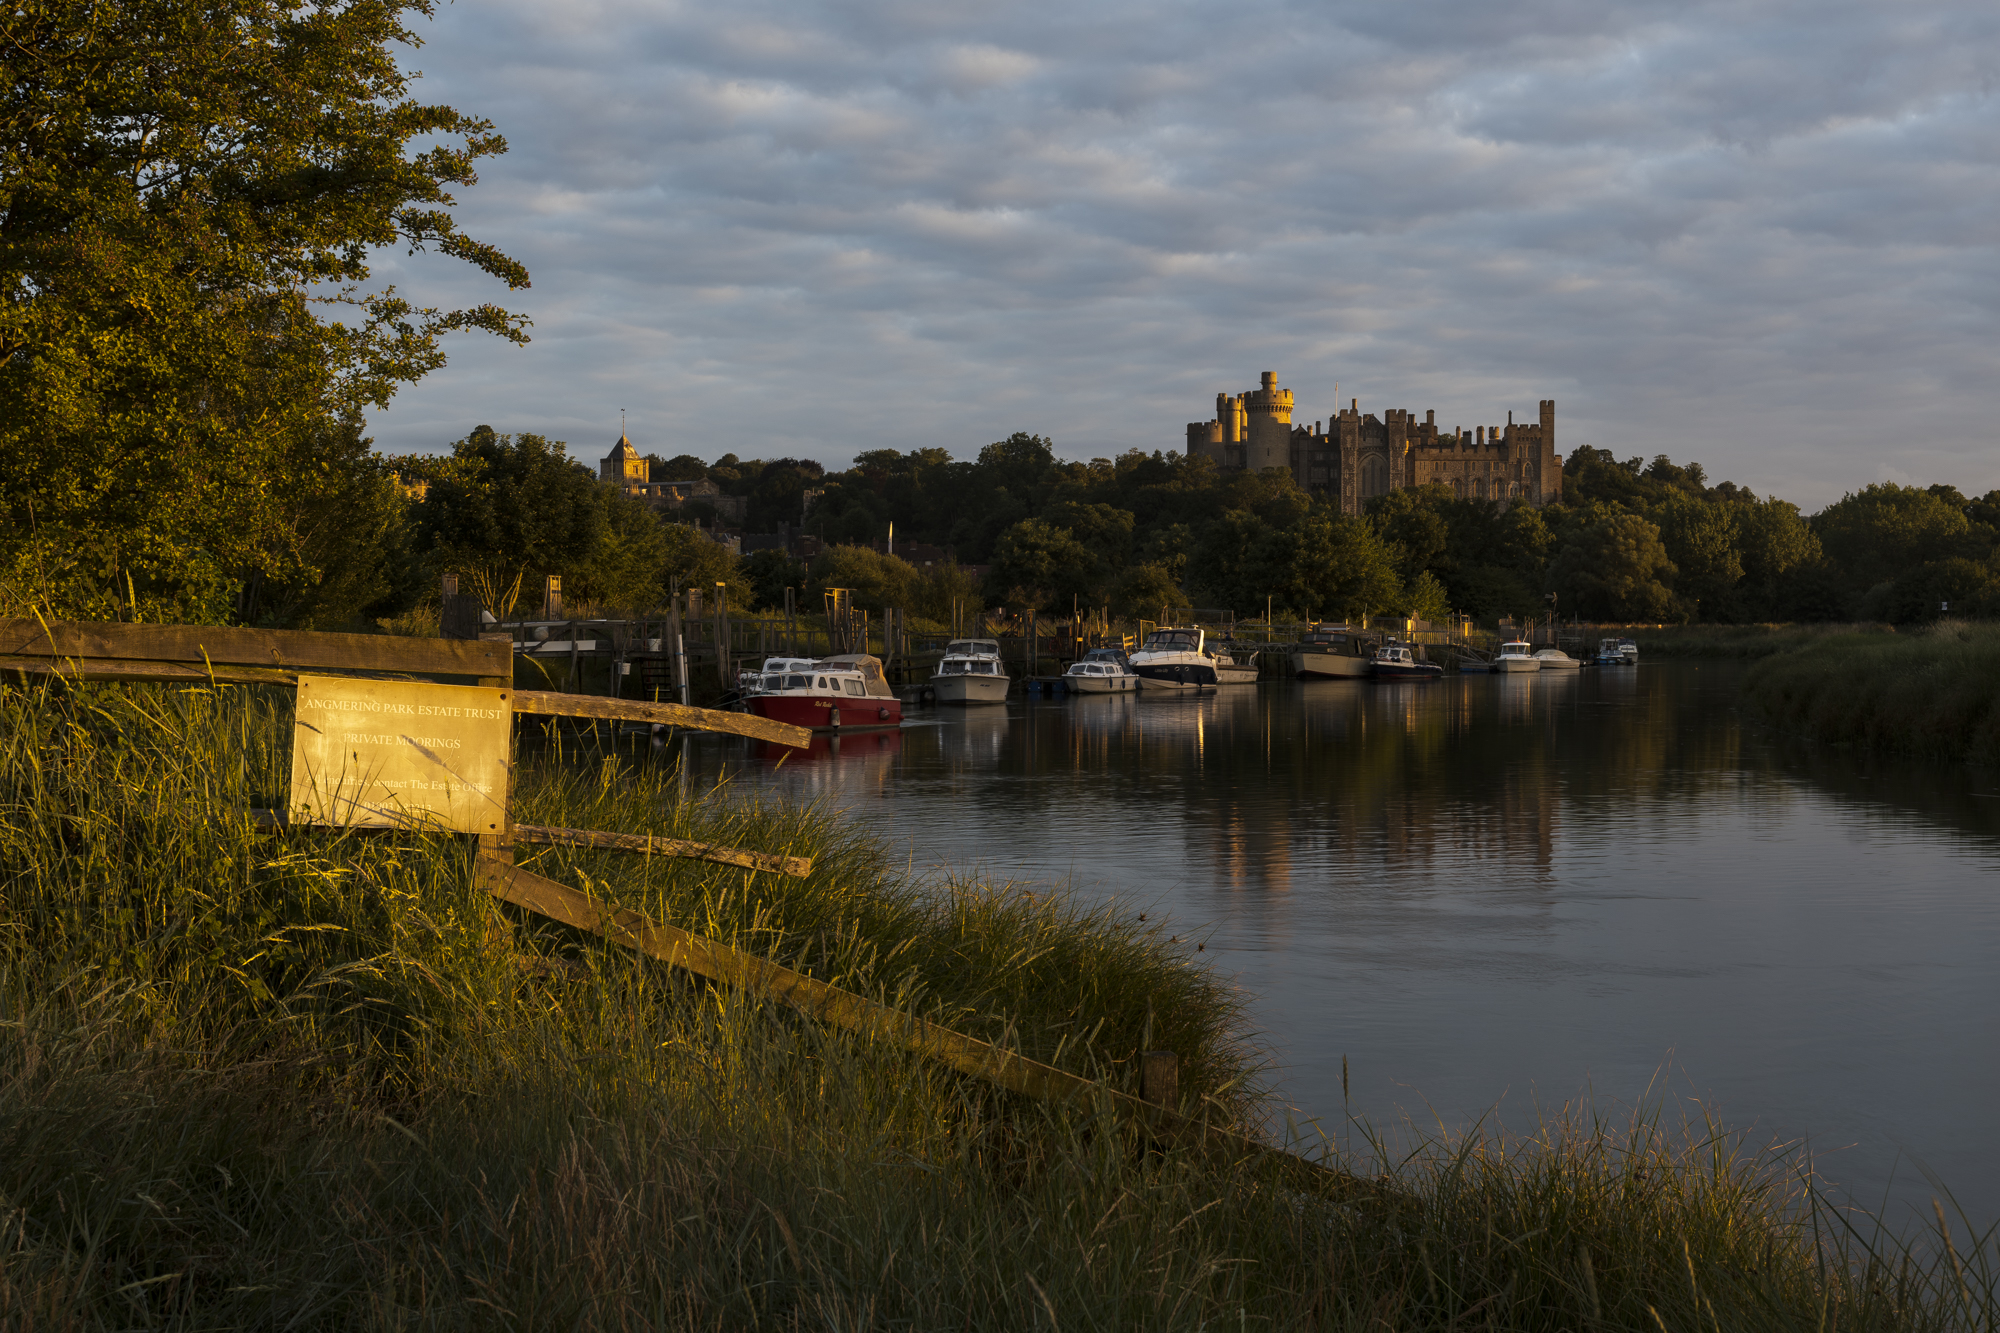 Sunrise at Arundel Castle, River Arun, West Sussex. Unedited raw file from the D7500, with the Sigma 35mm f/1.4 ART lens for full-frame.